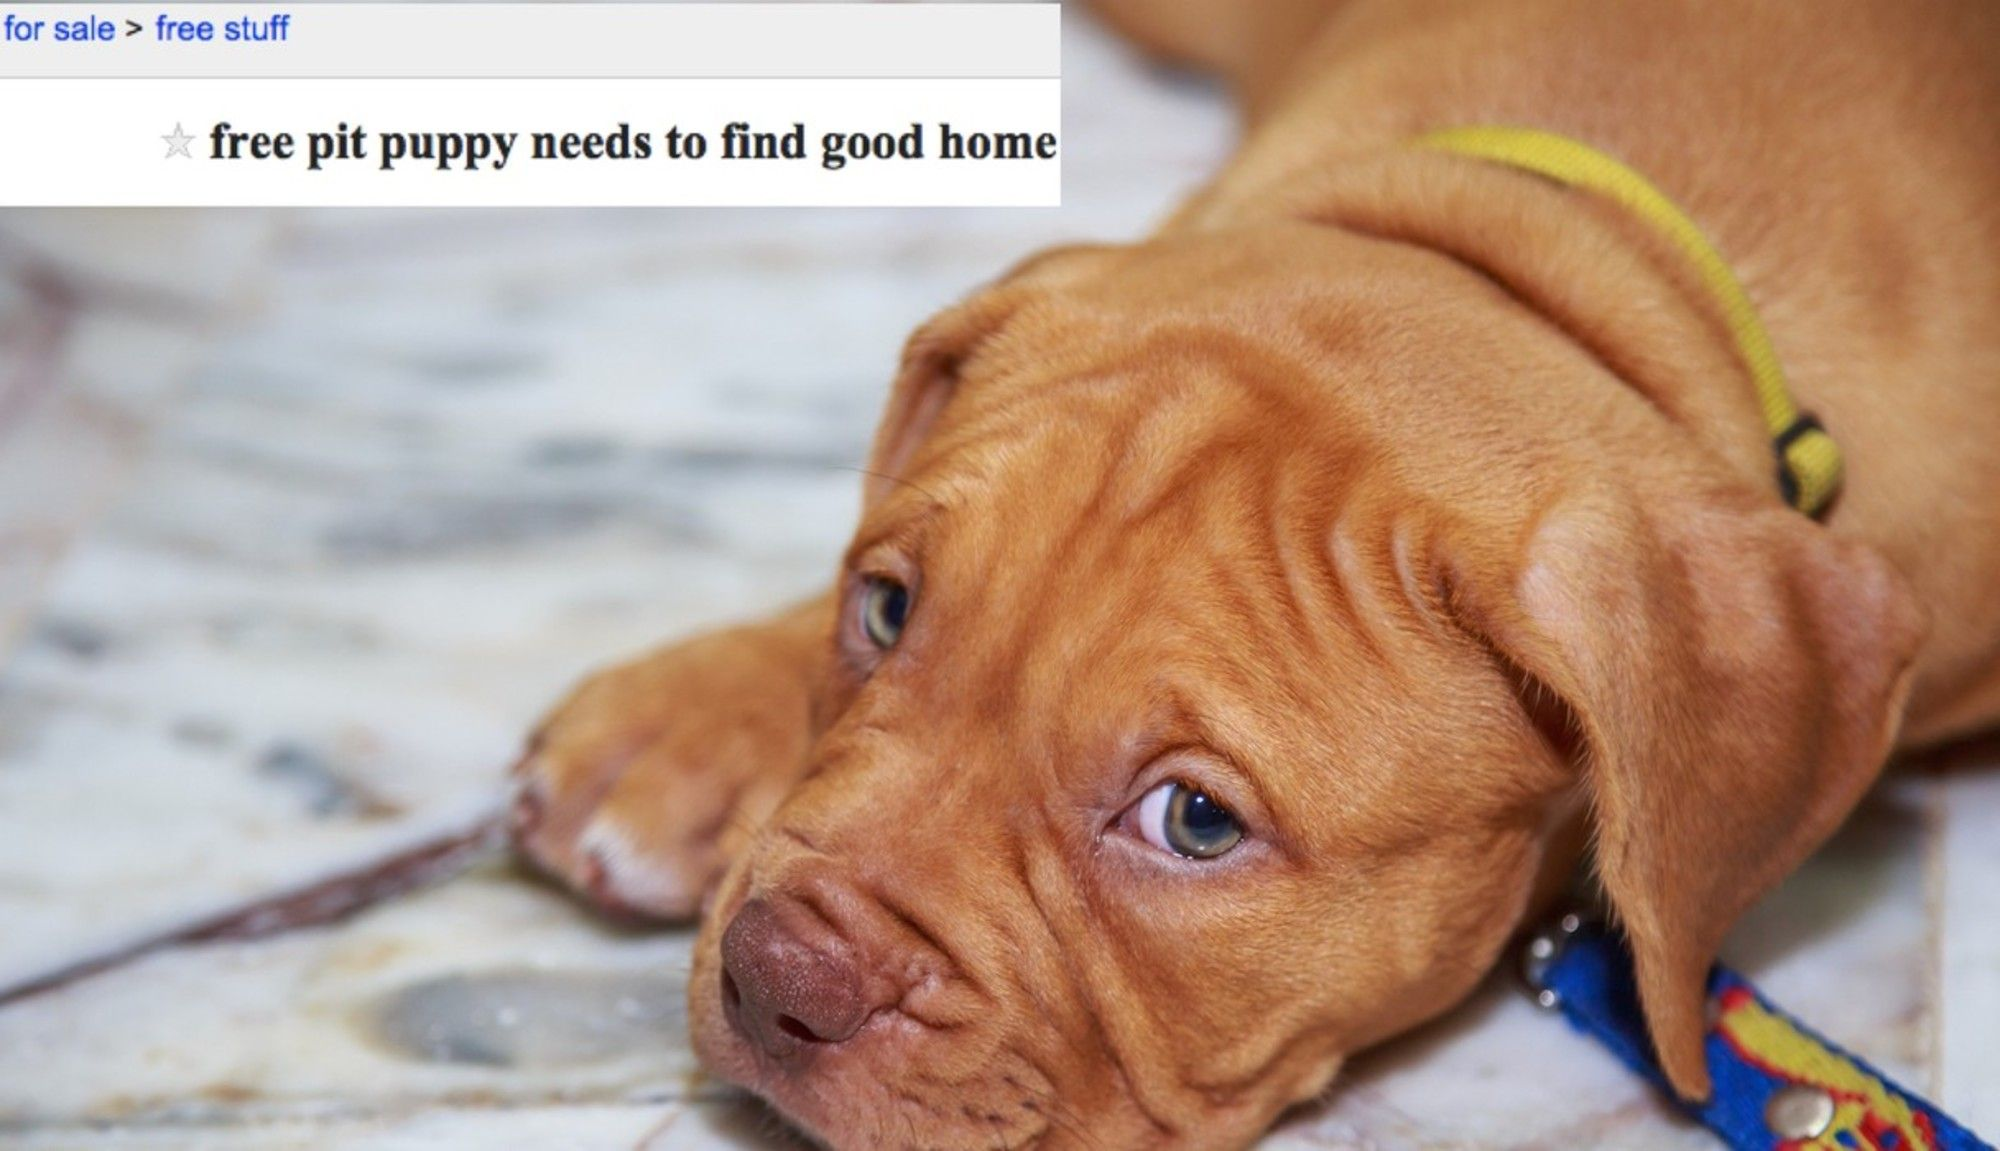 Why Giving Pets Away On Craigslist Is A Terrible Idea With Images Pets Pit Puppies Puppies